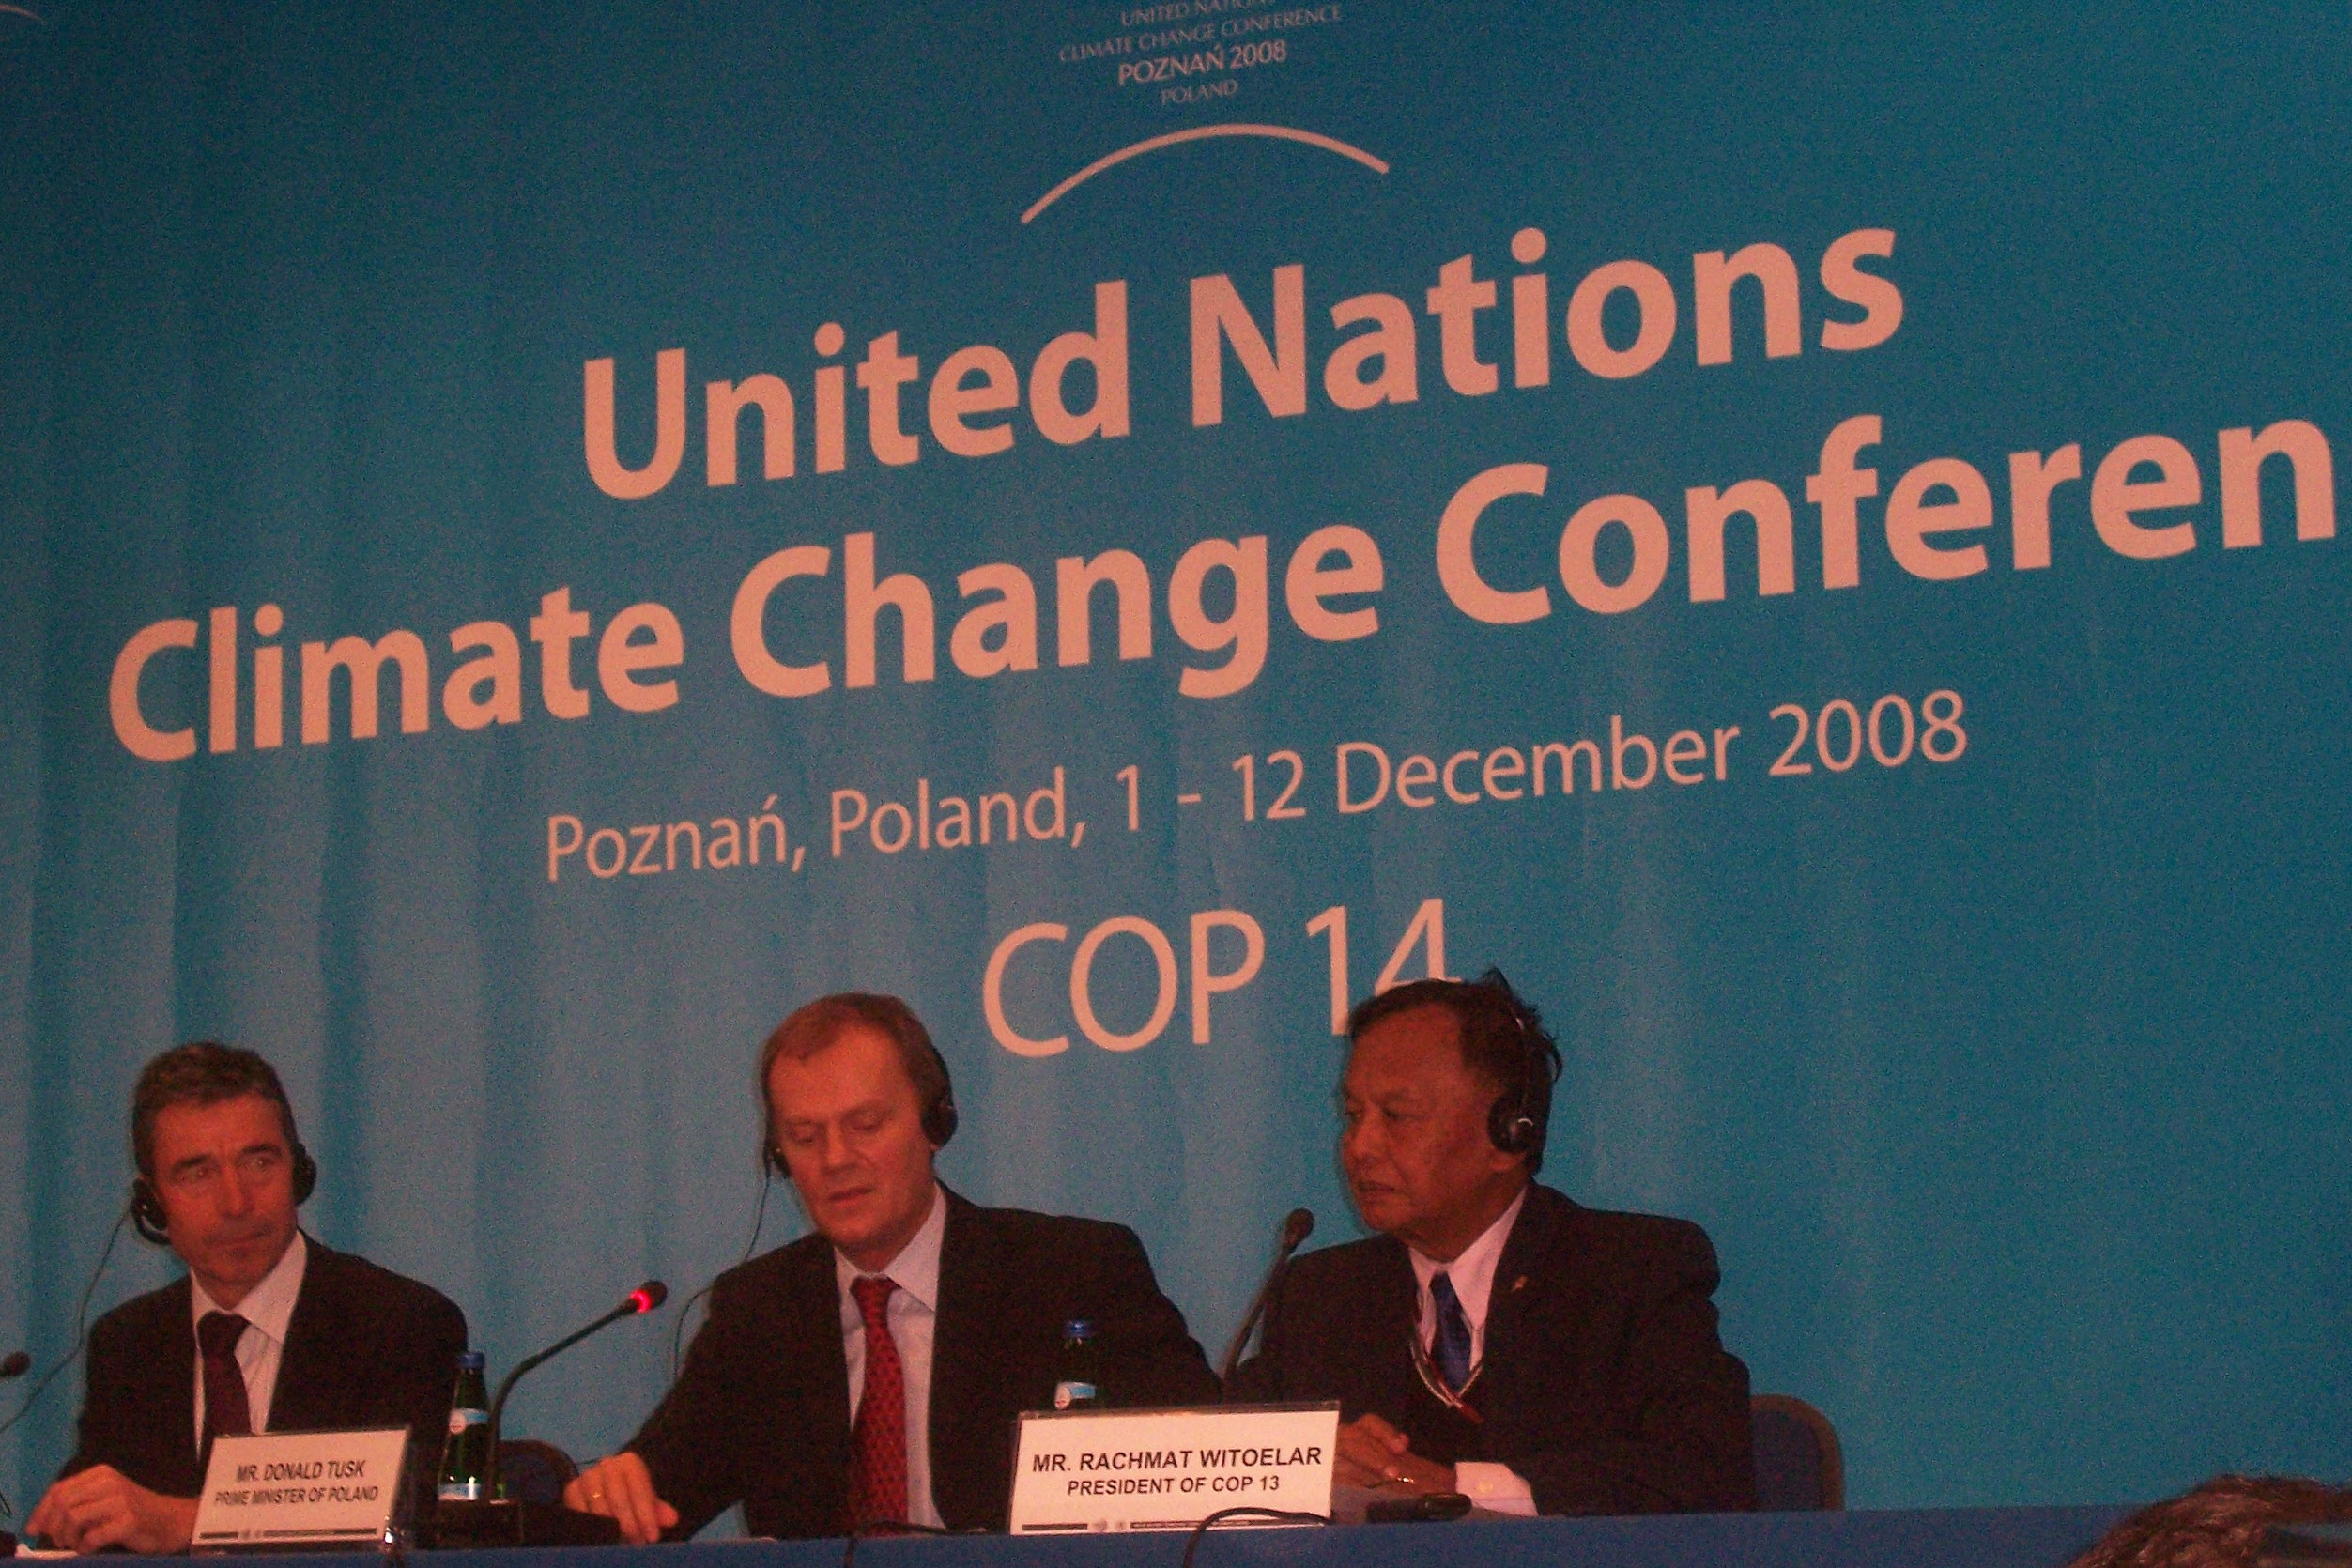 COP14_-_Poznan_2008_UN_Climate_Change_Conference_-_-Troika-_Press_Conference_(Rasmussen,_Tusk,_Witoelar) (1)